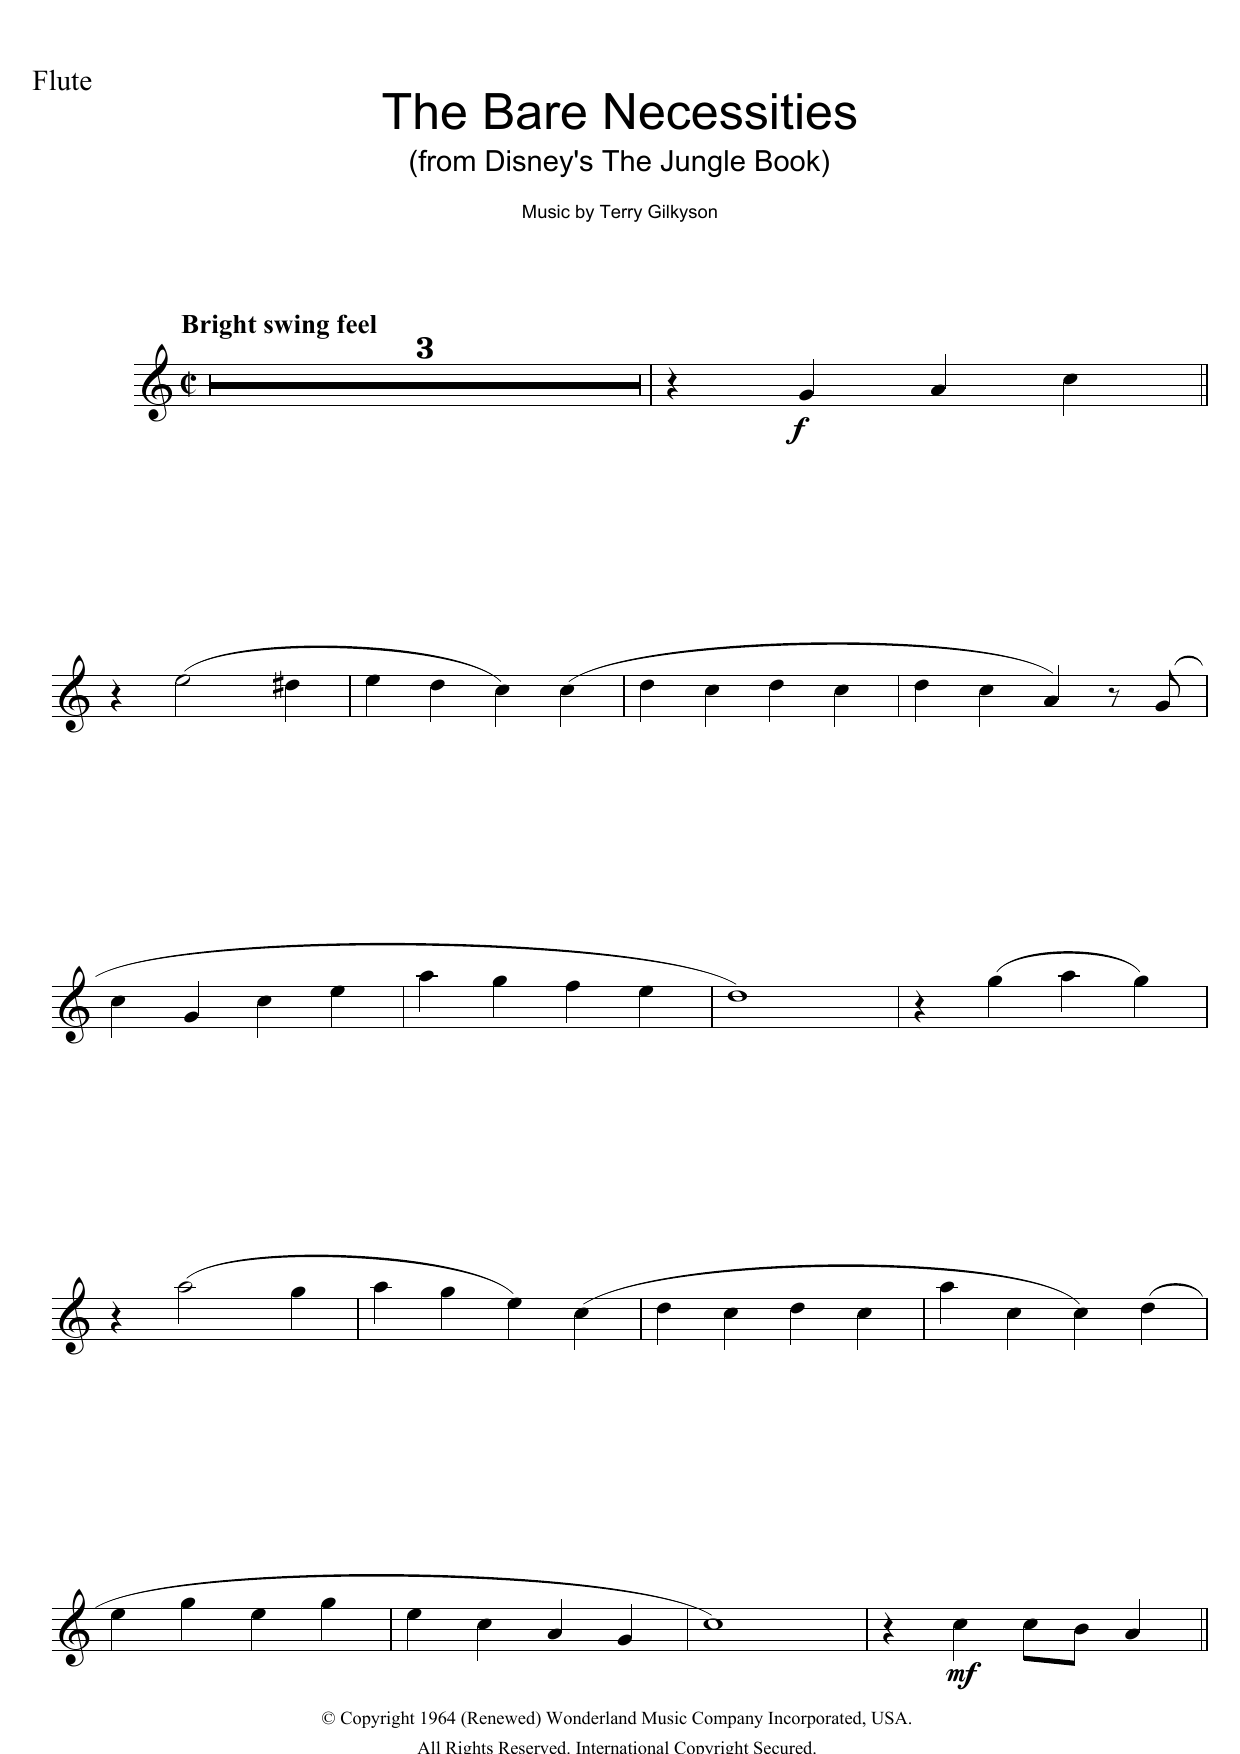 The Bare Necessities (from Disney's The Jungle Book) (Flute Solo)